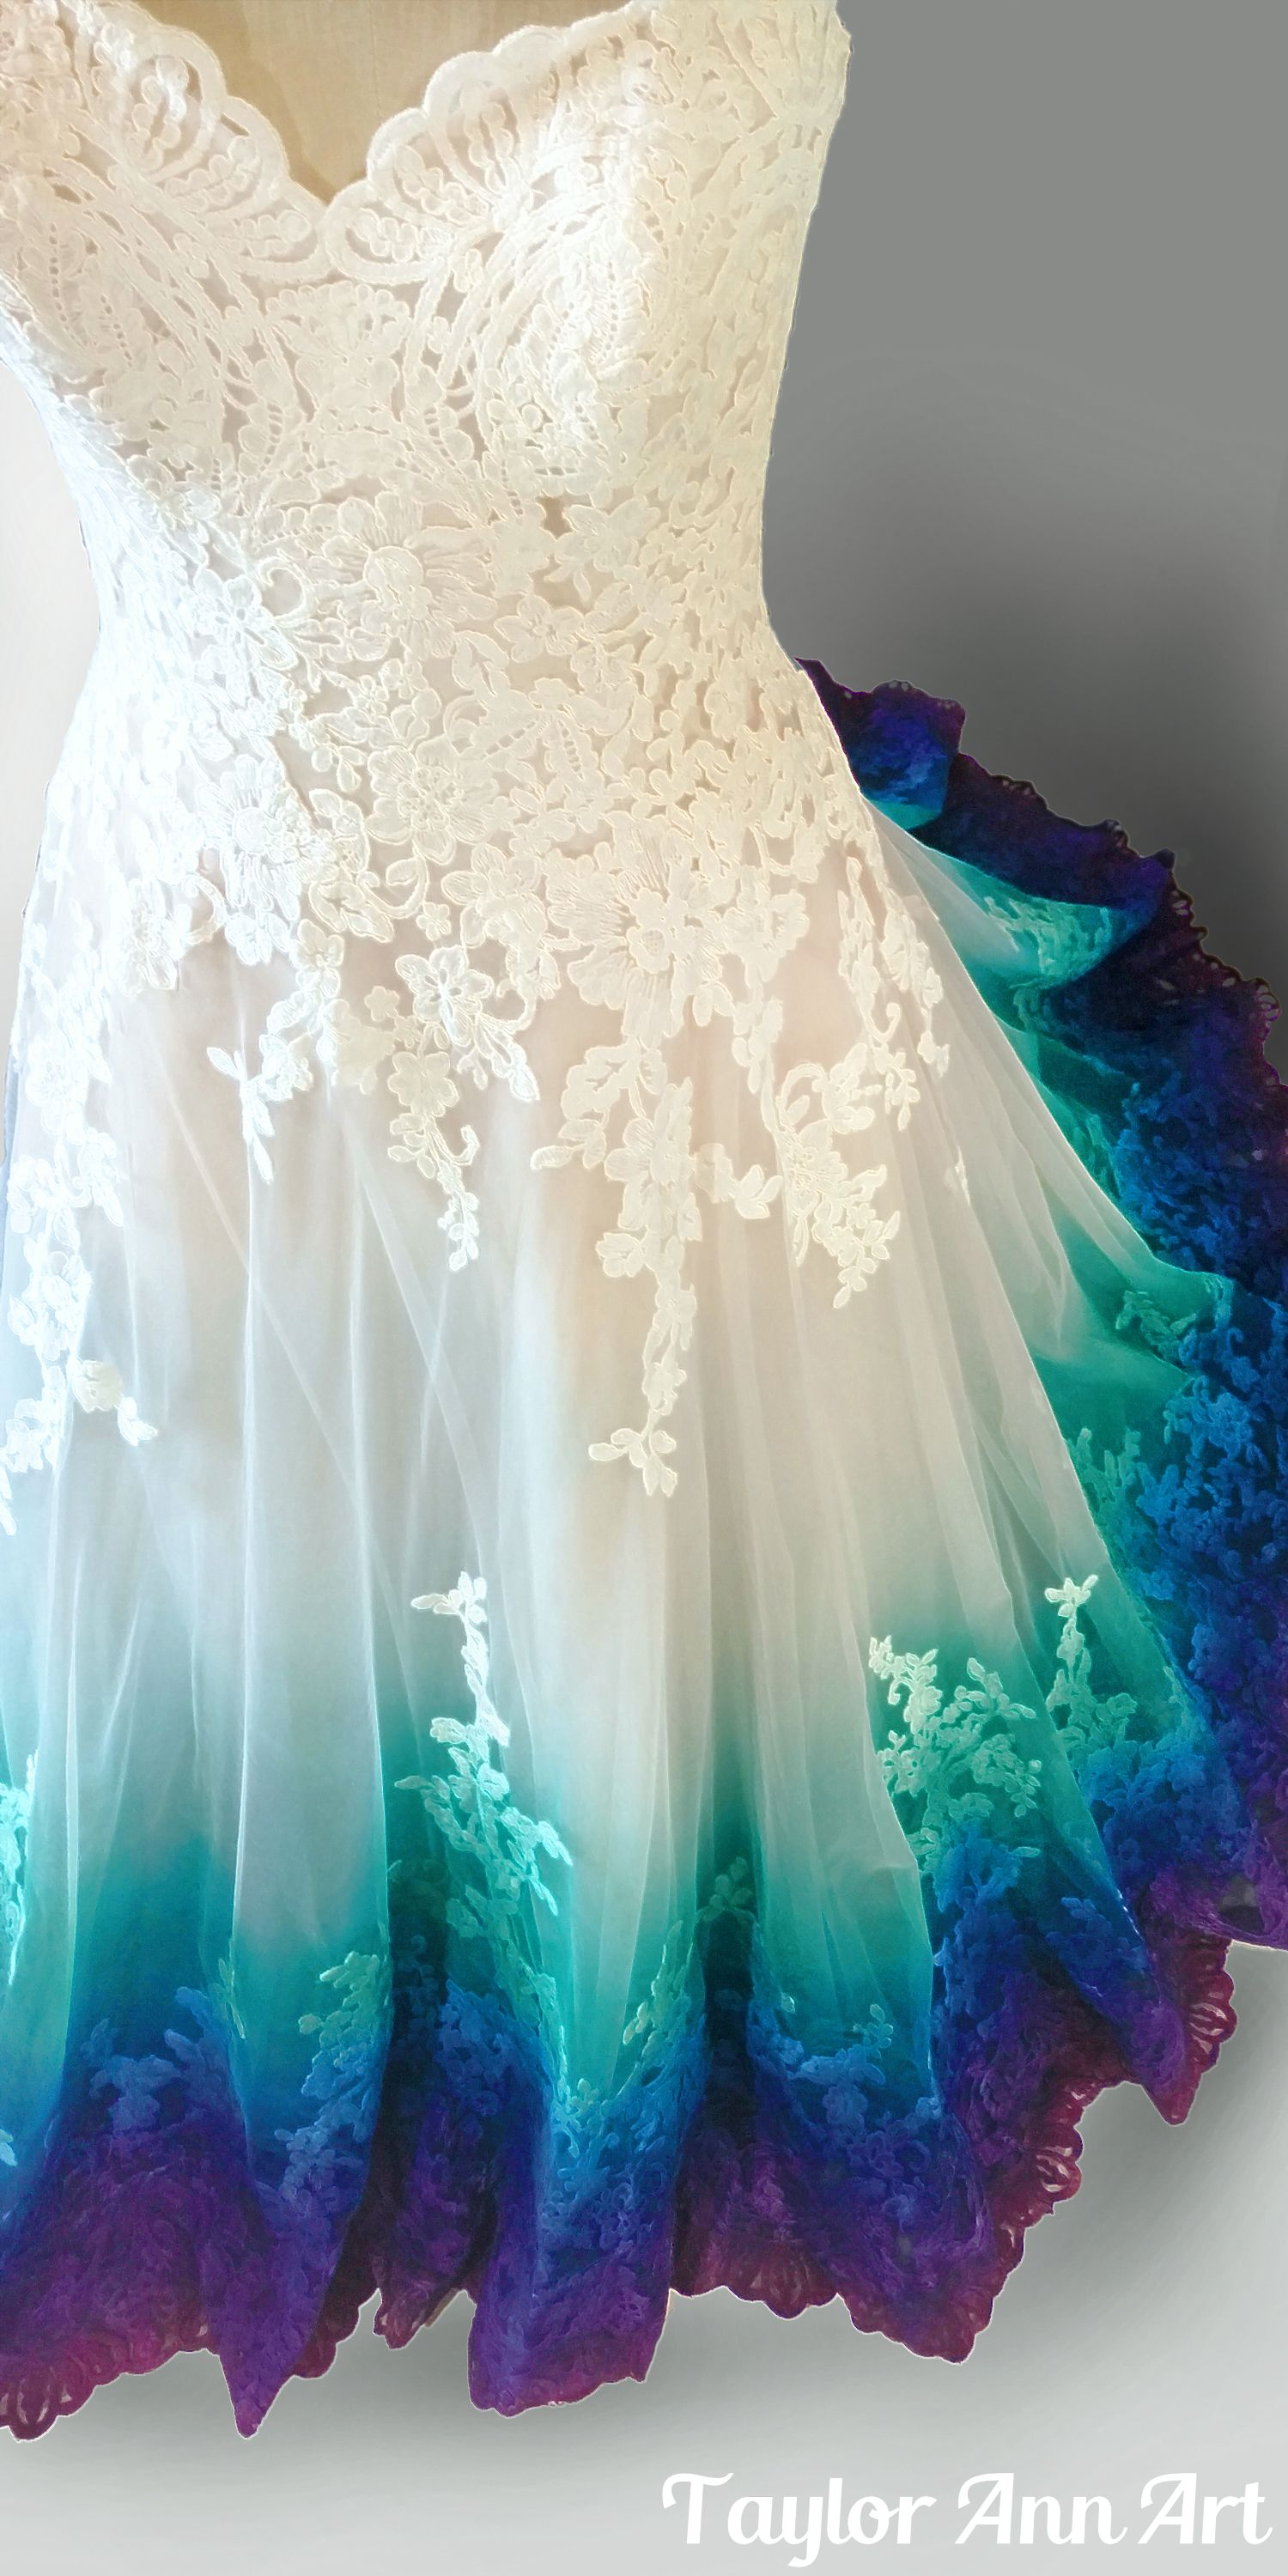 Airbrushed wedding dress  Dress Coloring by Taylor Ann Art  Peacock Wedding  Colorful